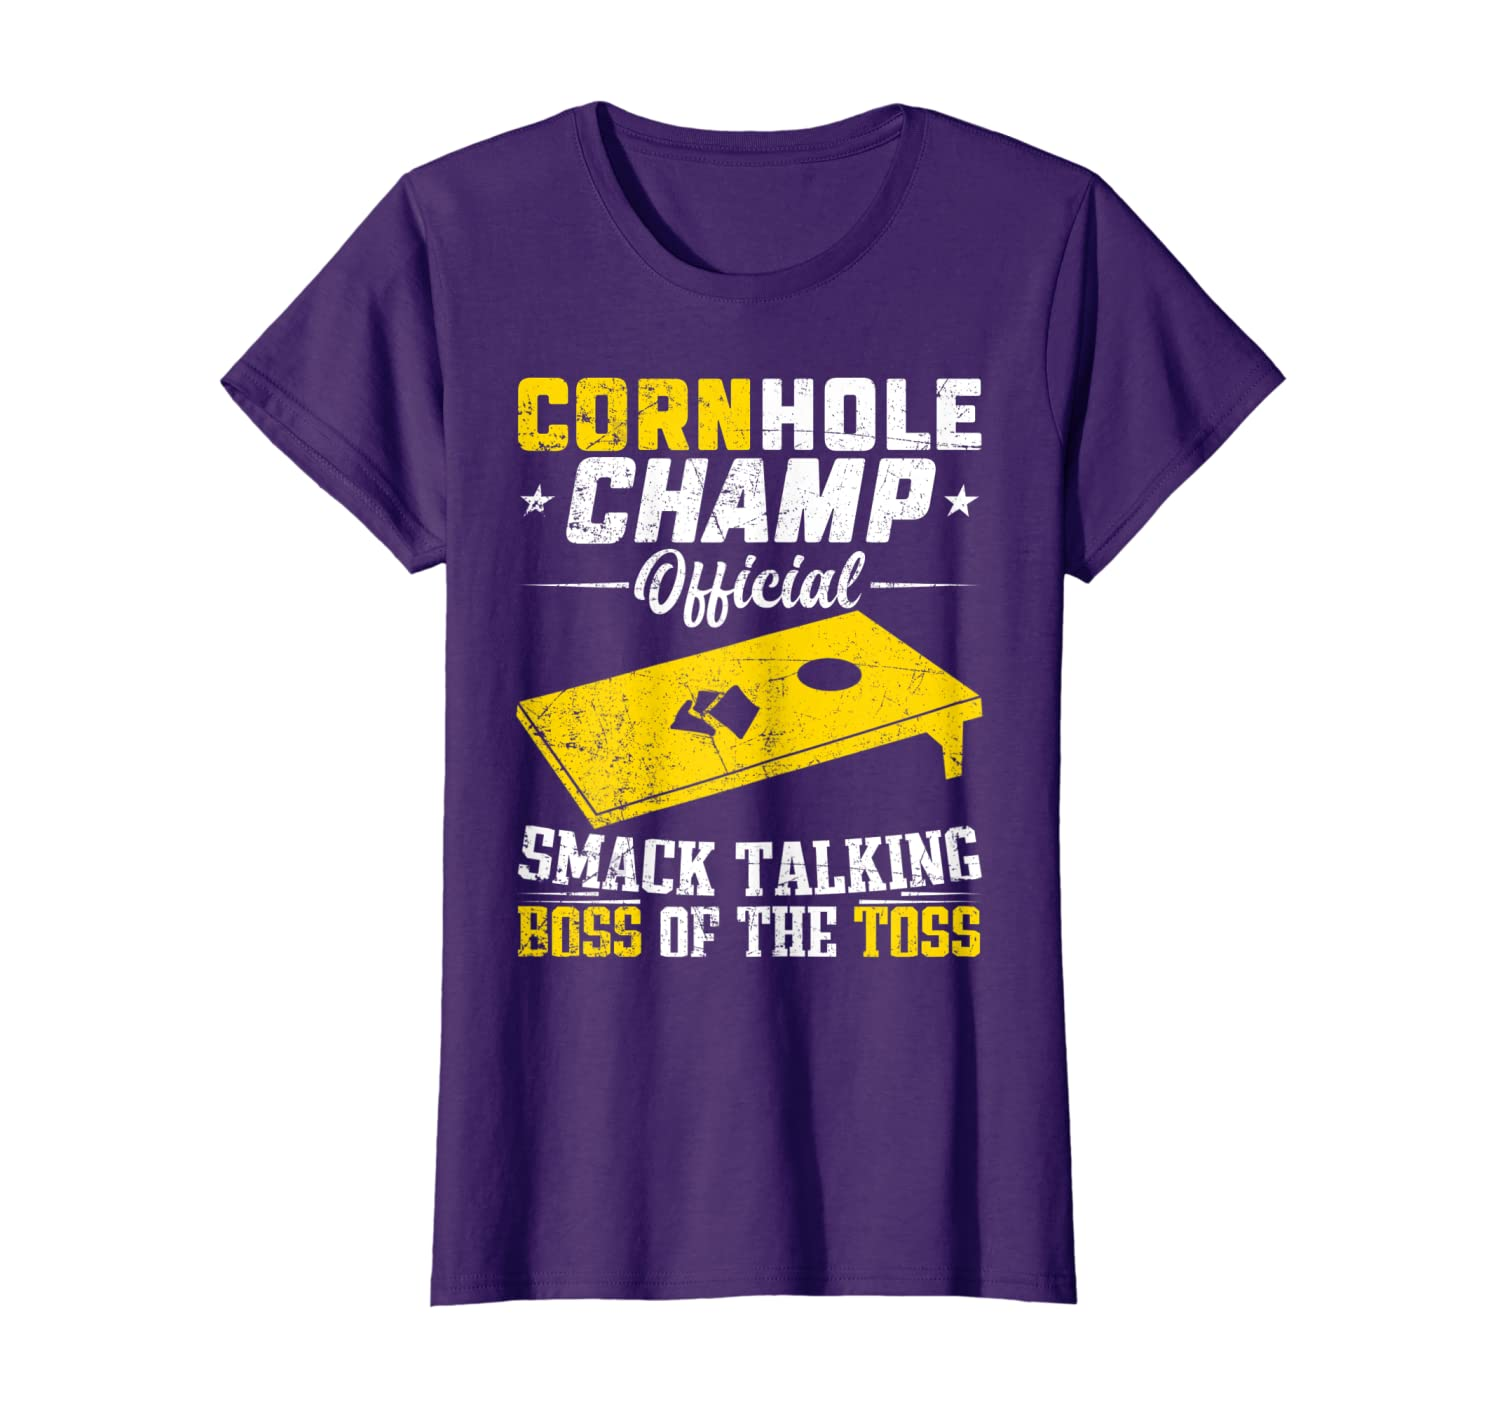 Cornhole Champion Gift Corn Hole Toss Boss Smack Talking T-Shirt